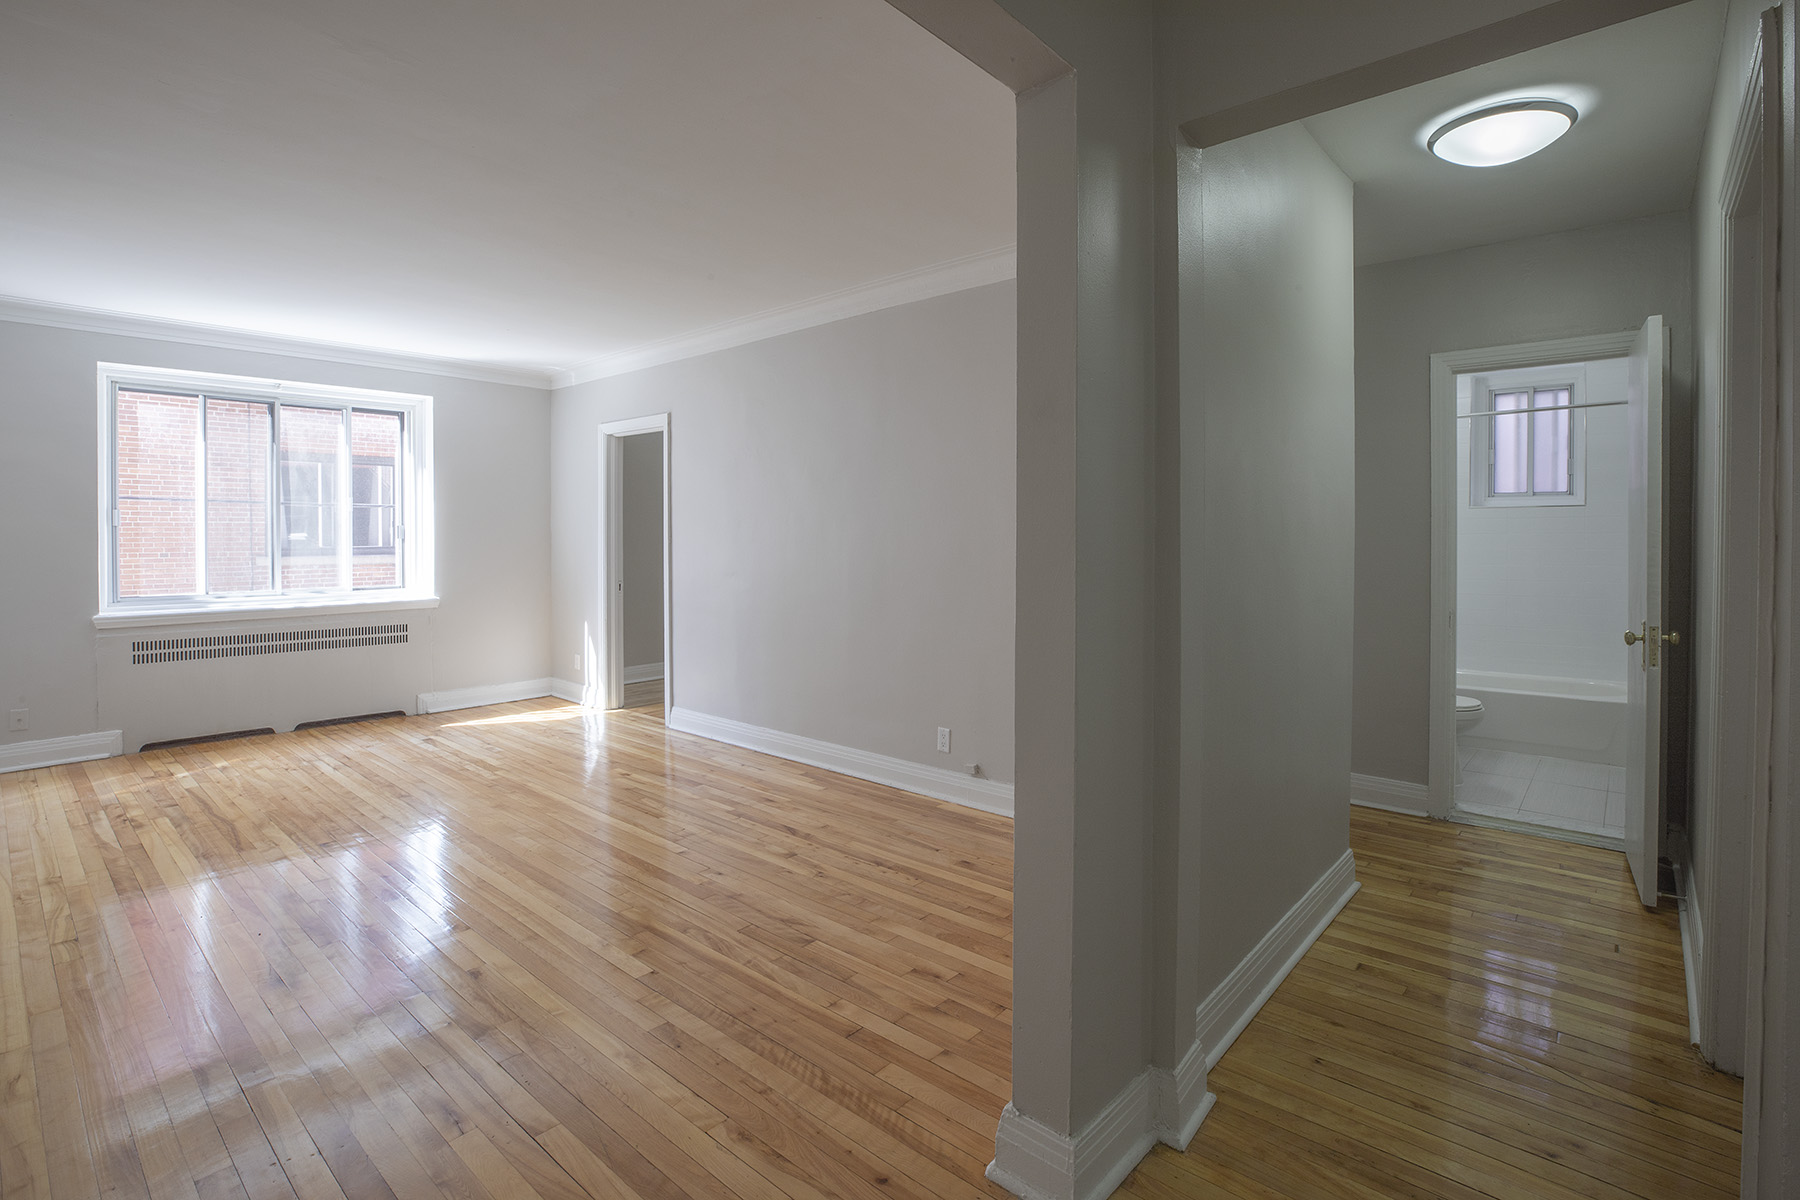 2 bedroom Apartments for rent in Cote-des-Neiges at 5000 Clanranald - Photo 13 - RentQuebecApartments – L401548